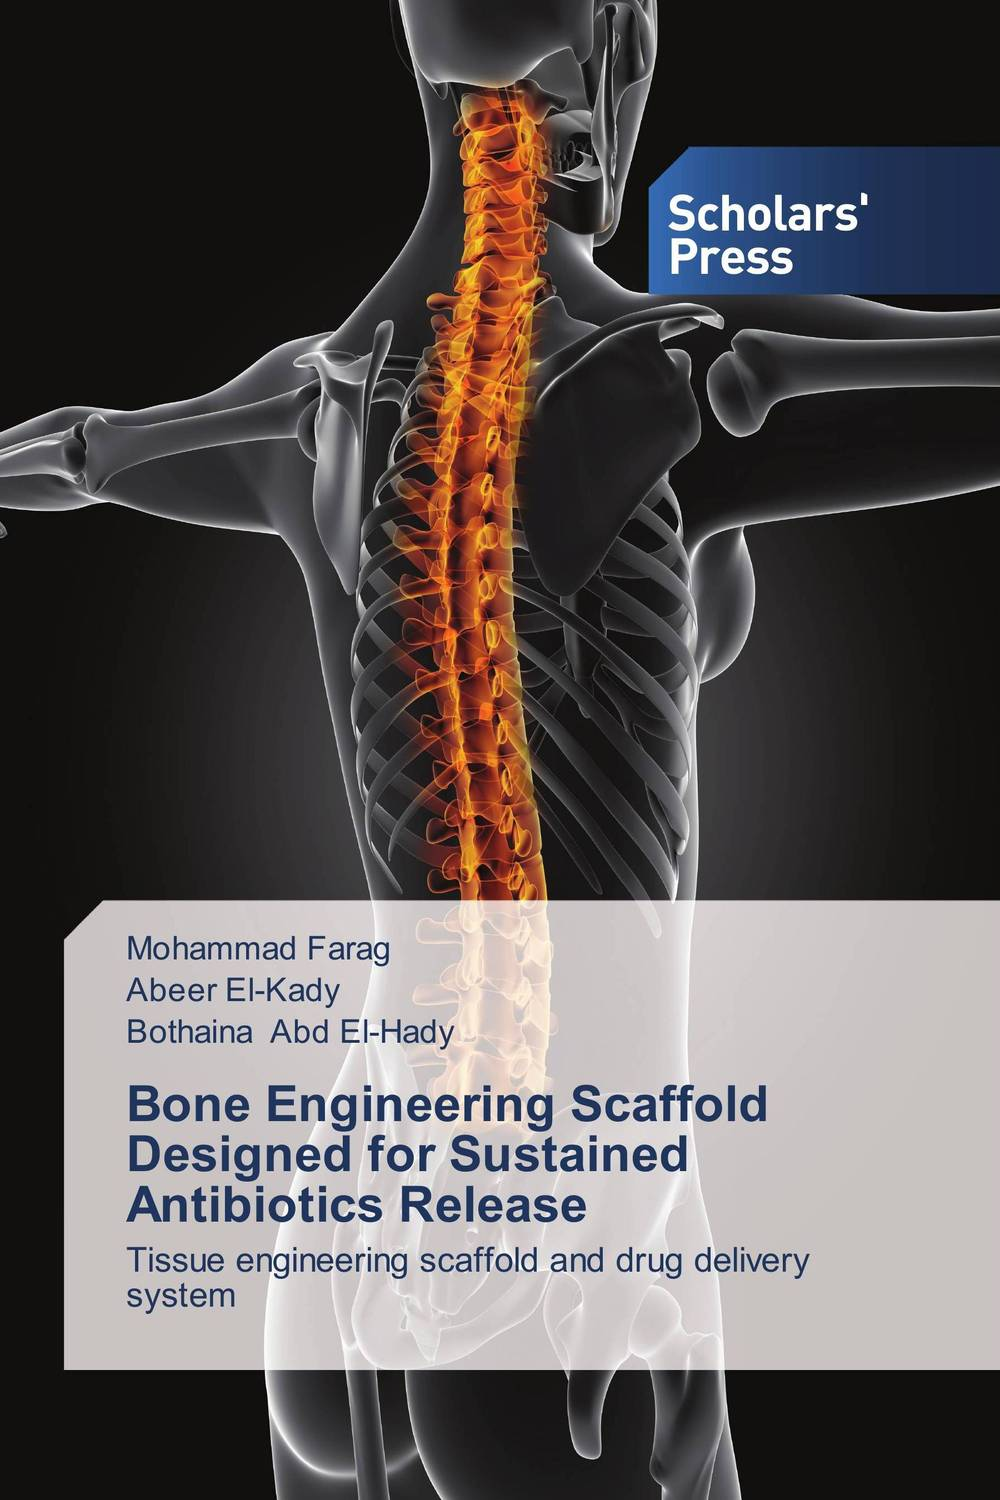 Bone Engineering Scaffold Designed for Sustained Antibiotics Release prediction of bone length from bone fragments